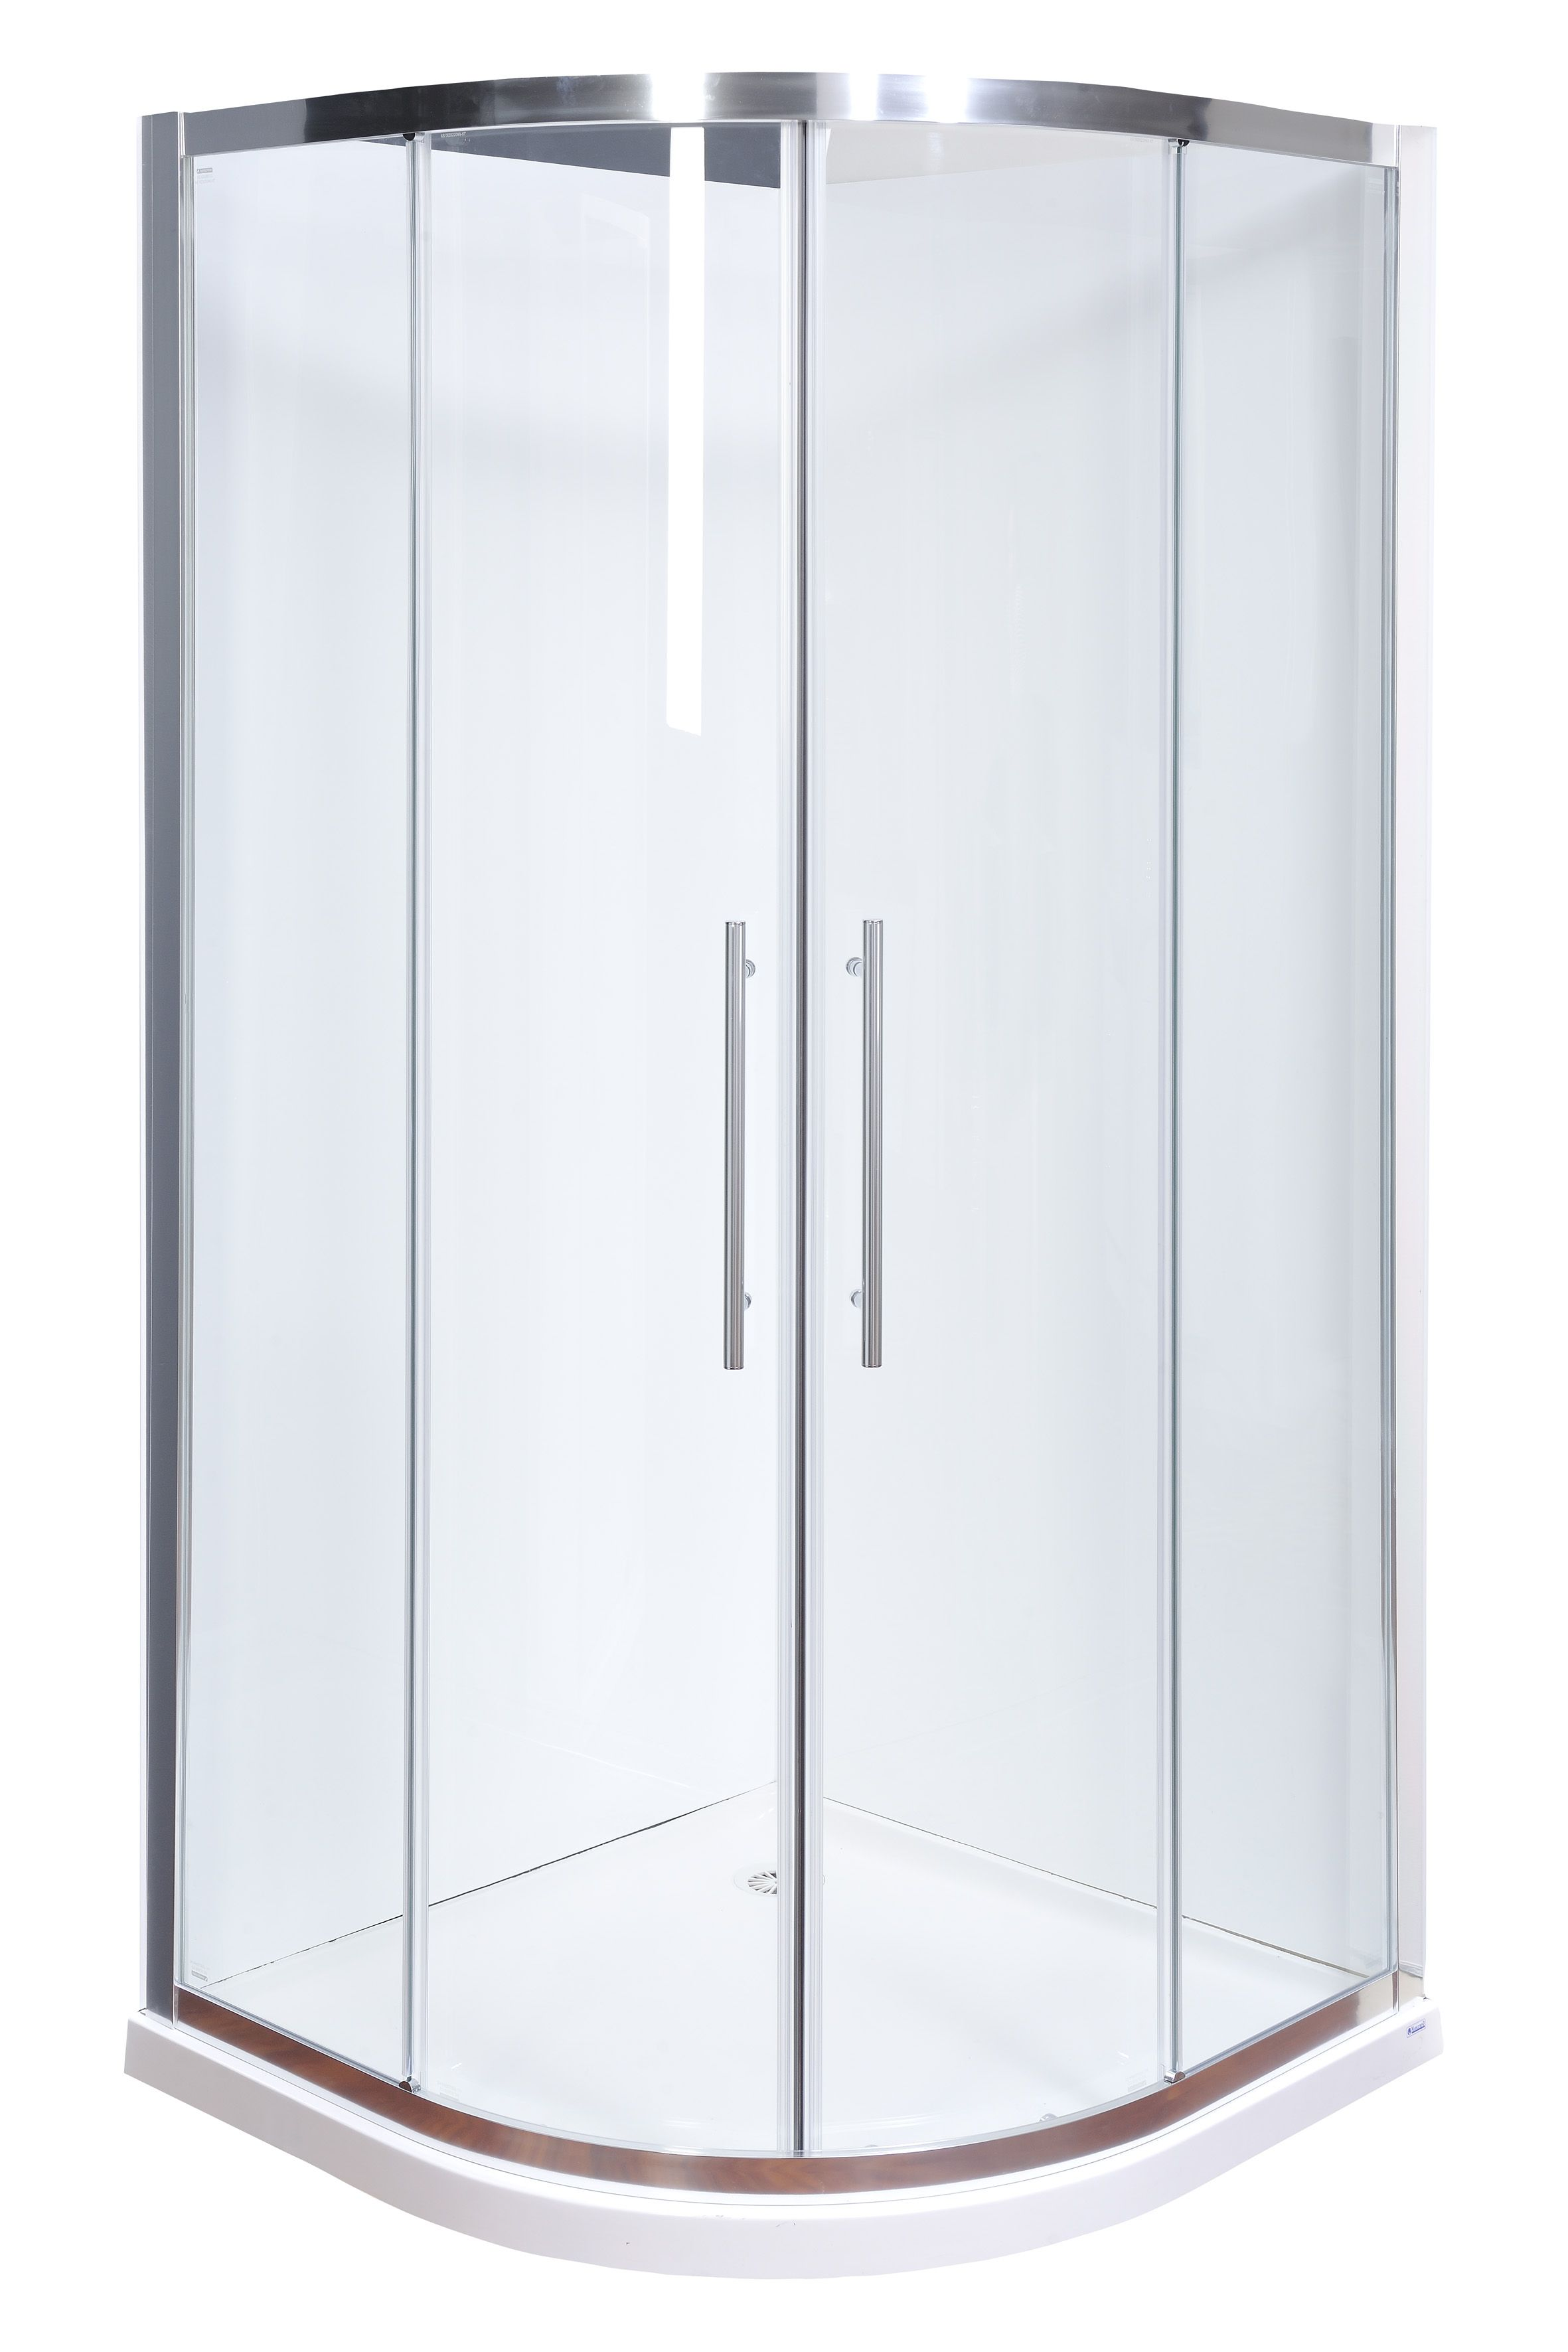 Shower Screen Carra Mtrend 1000x2000mm Curved Sscr99chcls Bunnings